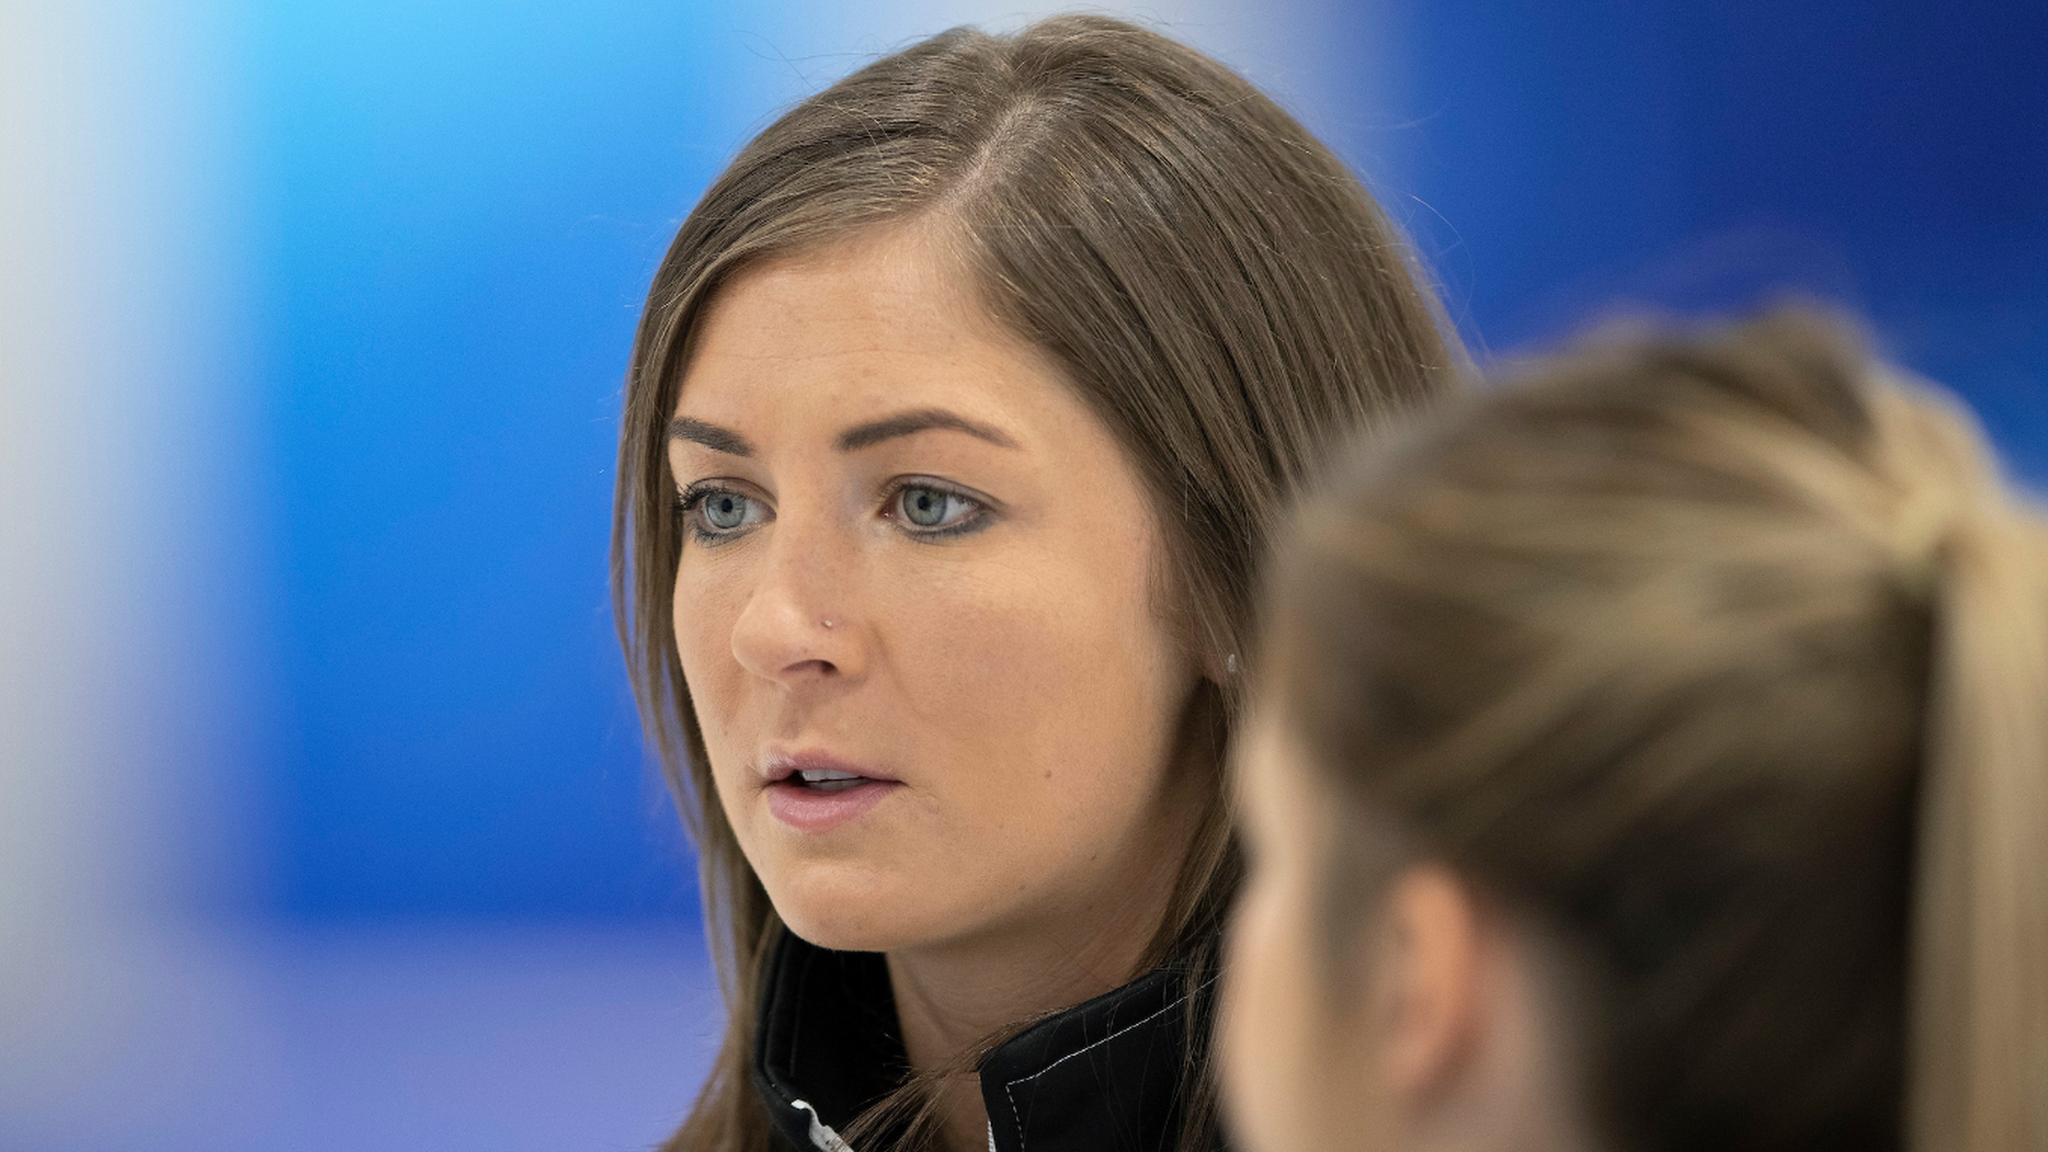 Curling: Eve Muirhead has 'big shoes to fill' subbing for rival Swedish skip